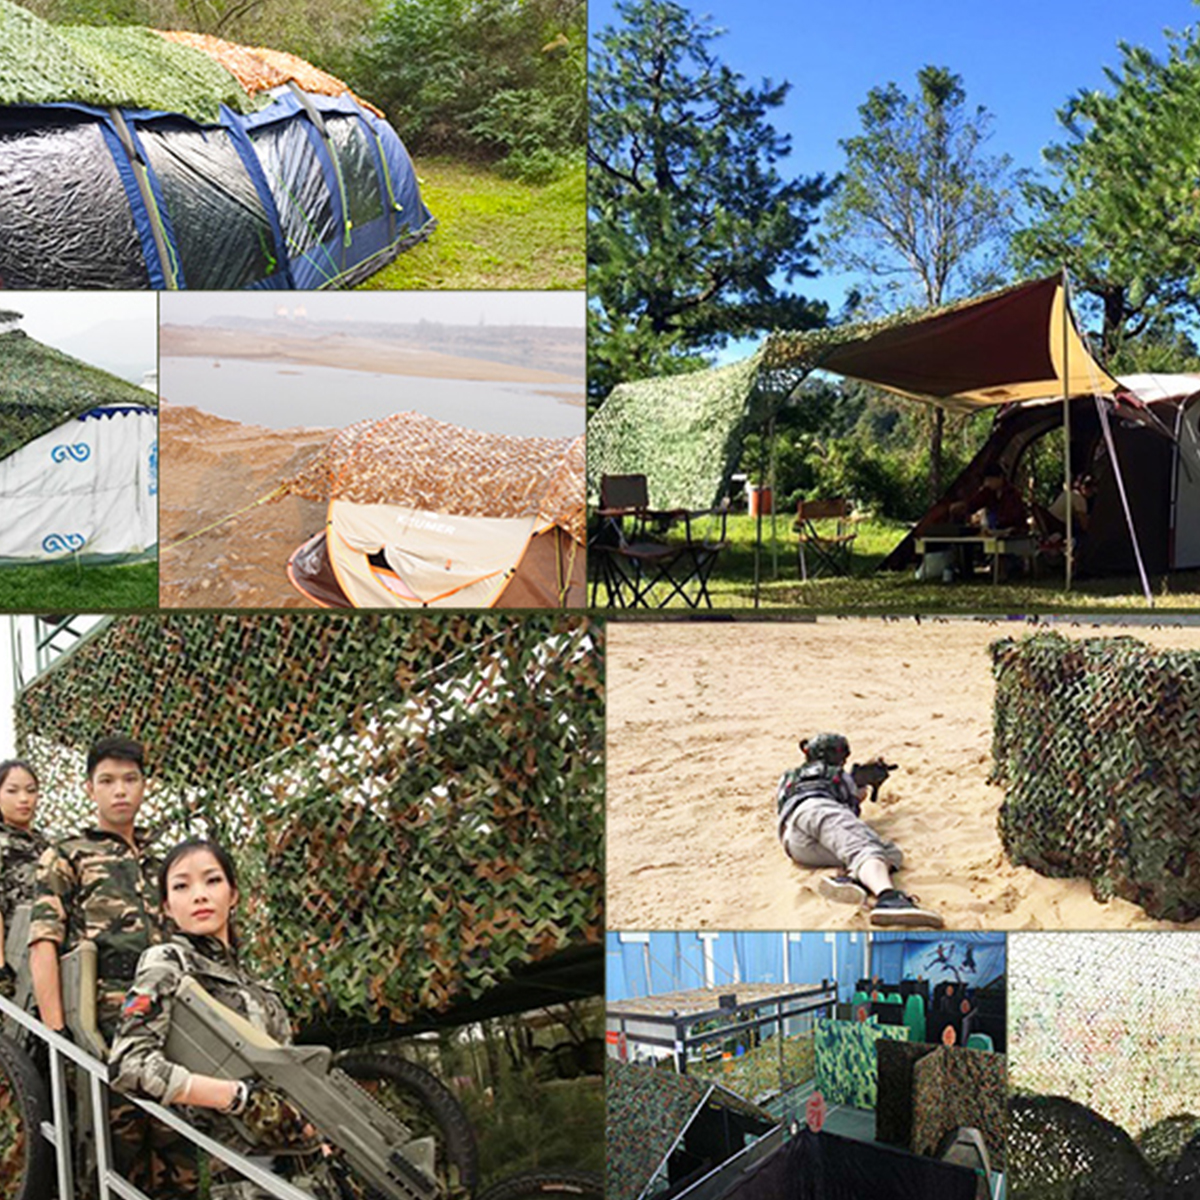 Multi-size Desert Camo Netting Camouflage Net for Car Cover Camping Woodland Military Hunting